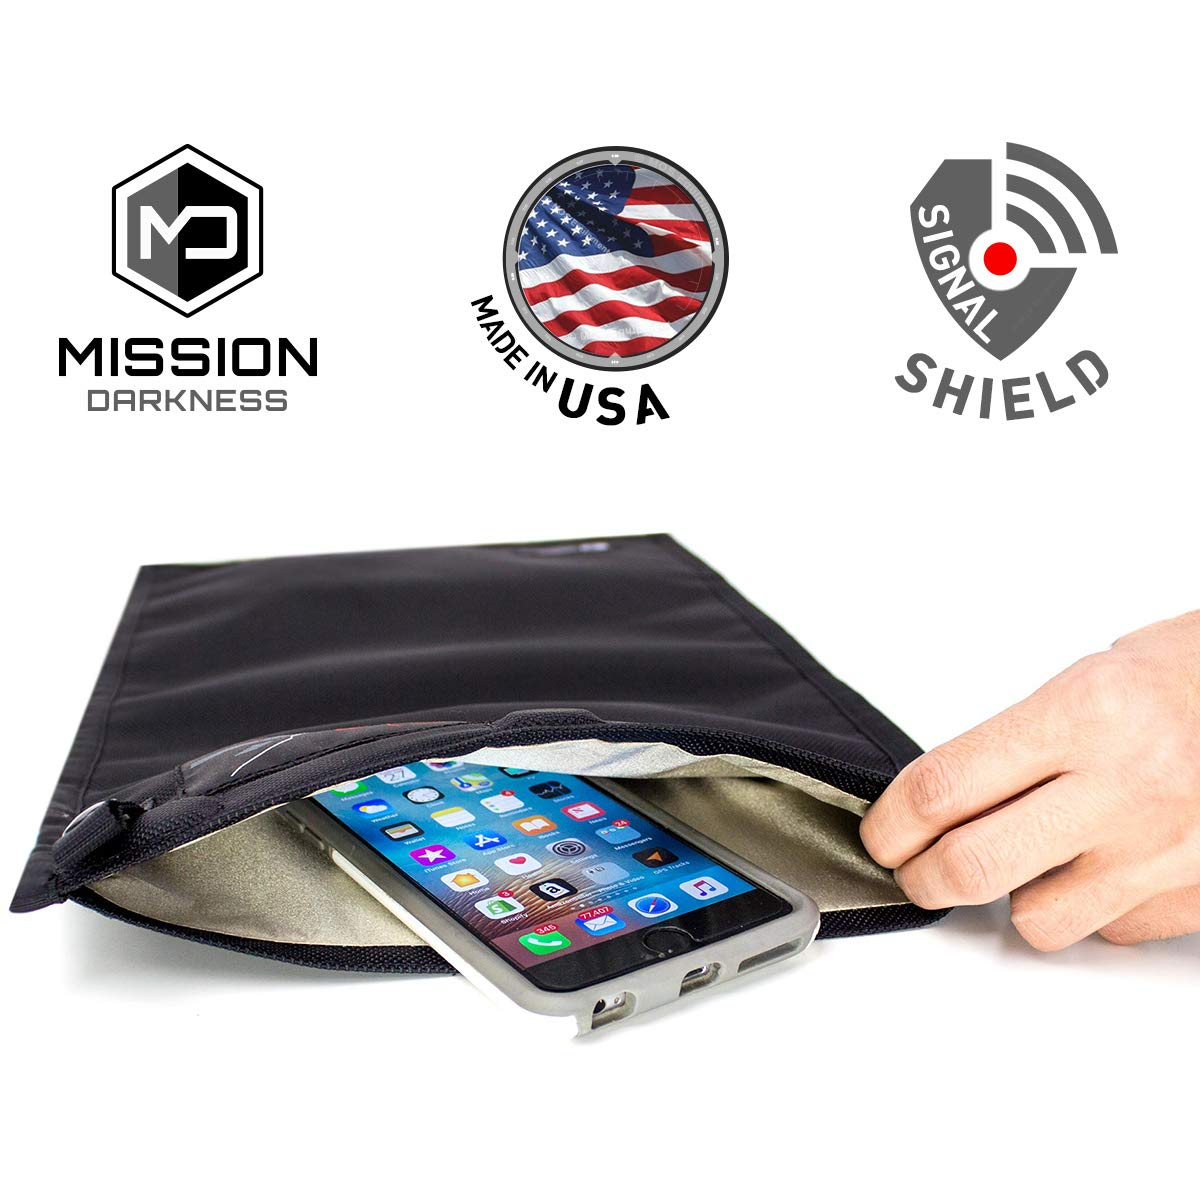 Mission Darkness Medium NeoLok Faraday Bag with Magnetic Closure // Tablet Size Device Shielding for Law Enforcement & Military, Travel & Data Security, Anti-Hacking & Anti-Tracking Assurance by Mission Darkness